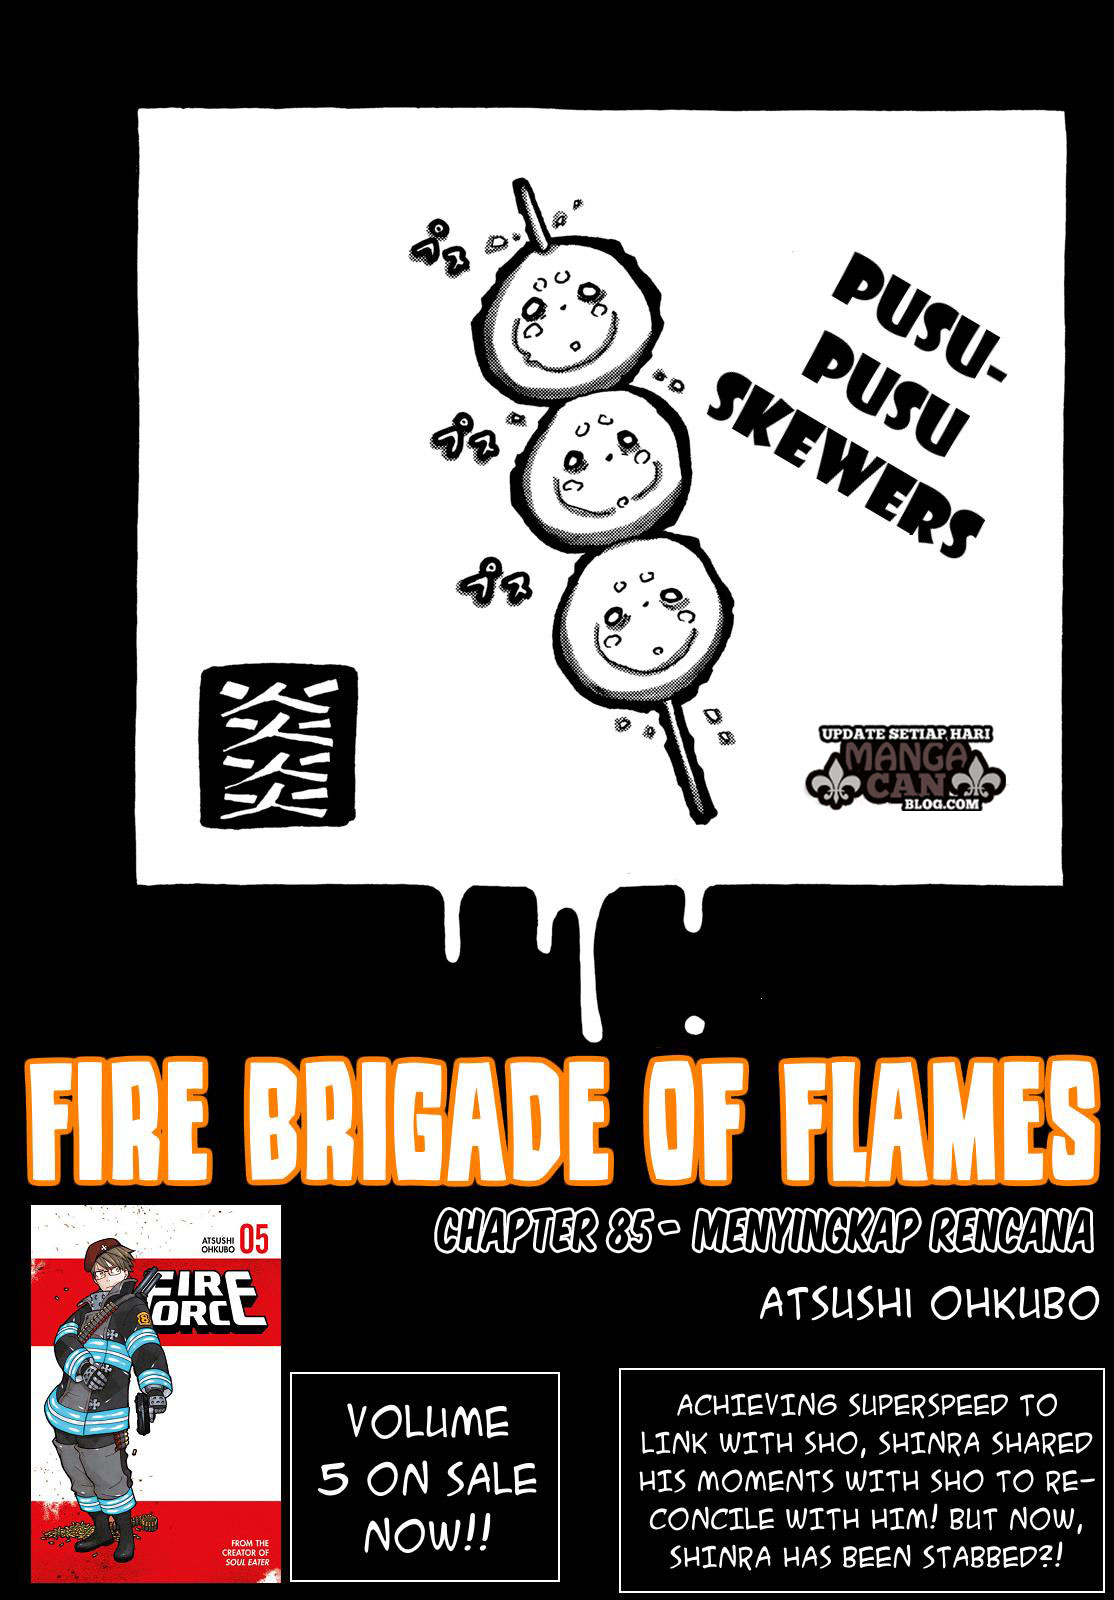 Fire Brigade of Flames Chapter 85